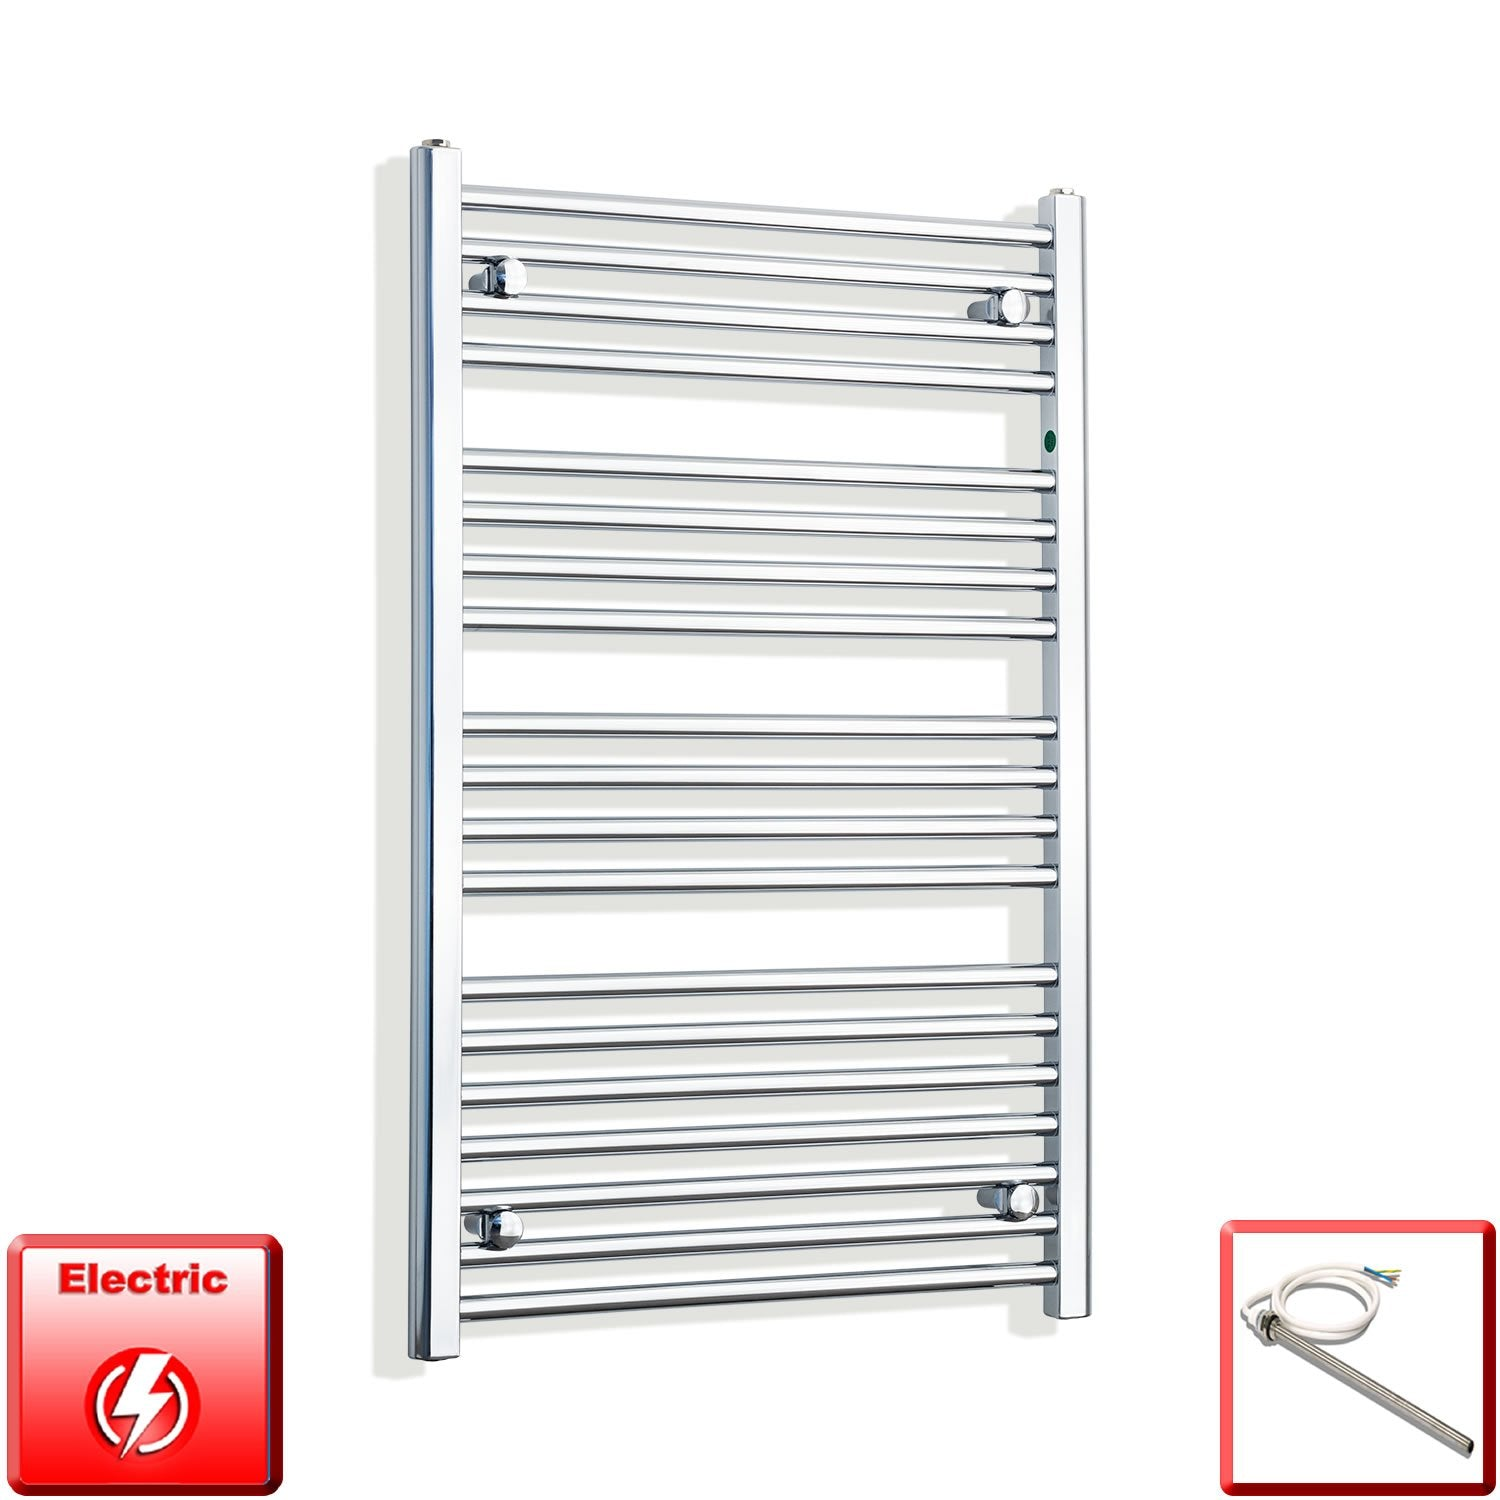 650mm Wide 1000mm High Flat Chrome Pre-Filled Electric Heated Towel Rail Radiator HTR,Single Heat Element